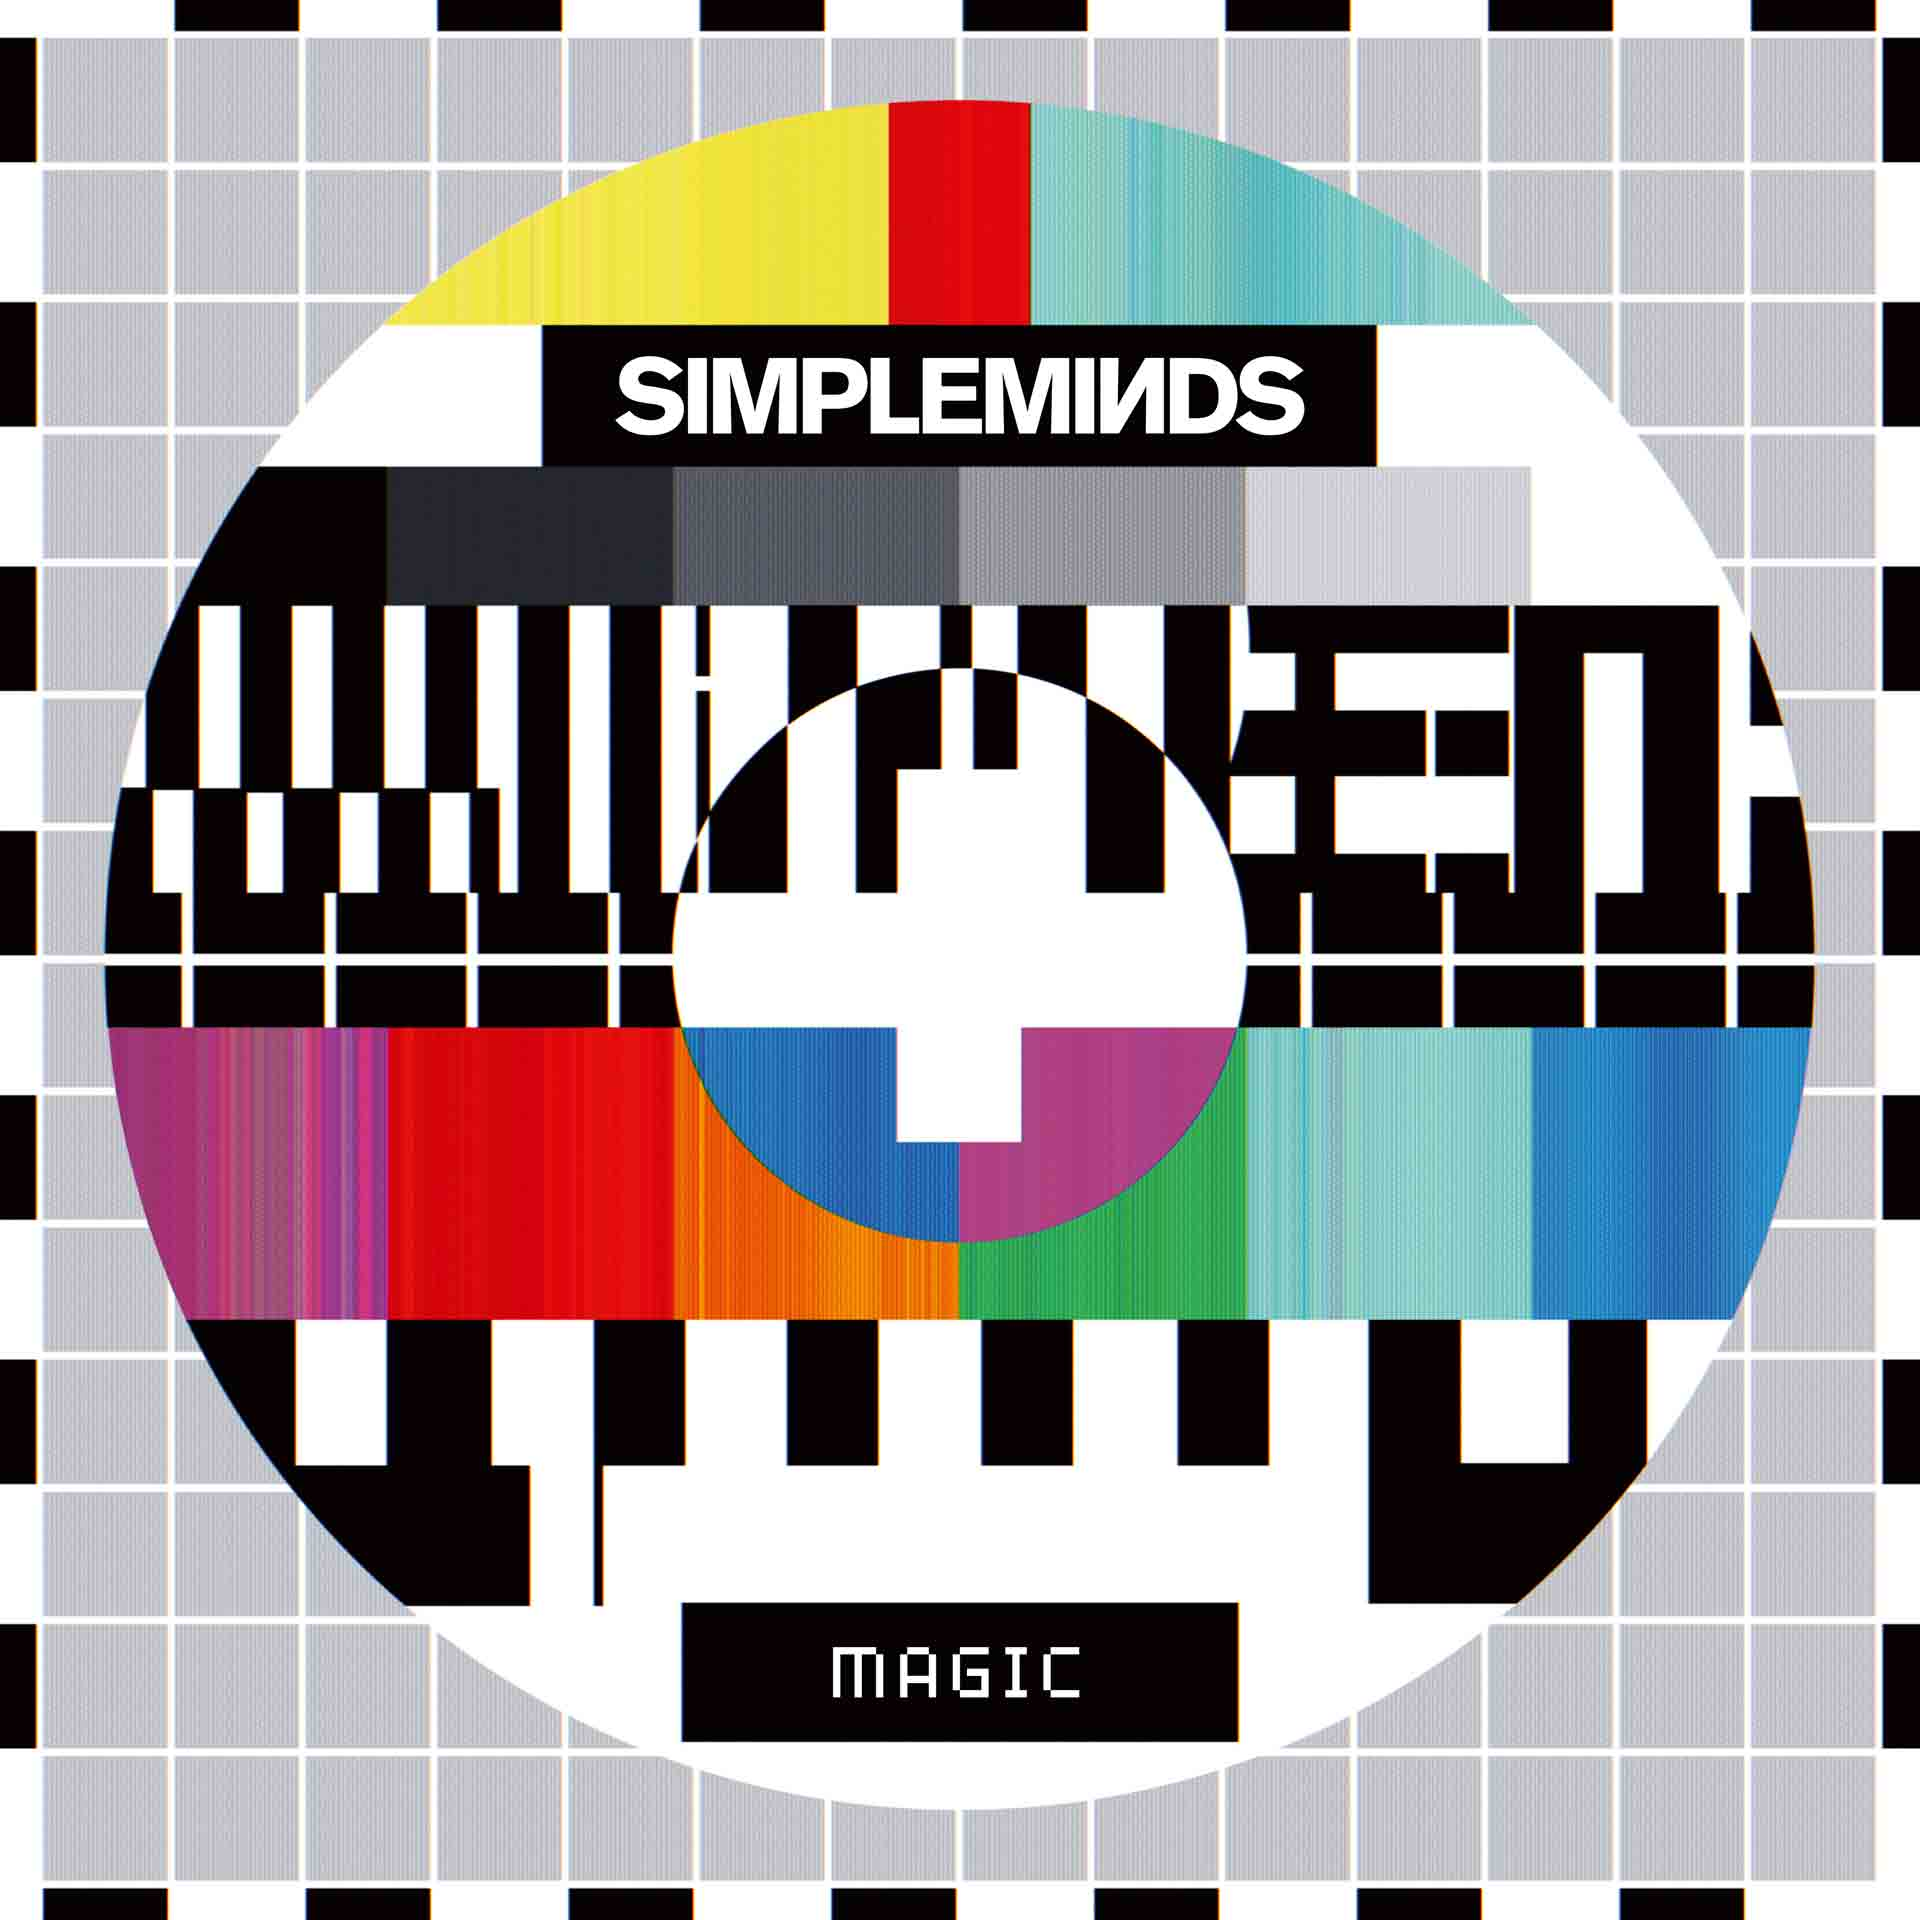 Official simple minds home page simpleminds watch magic video buycottarizona